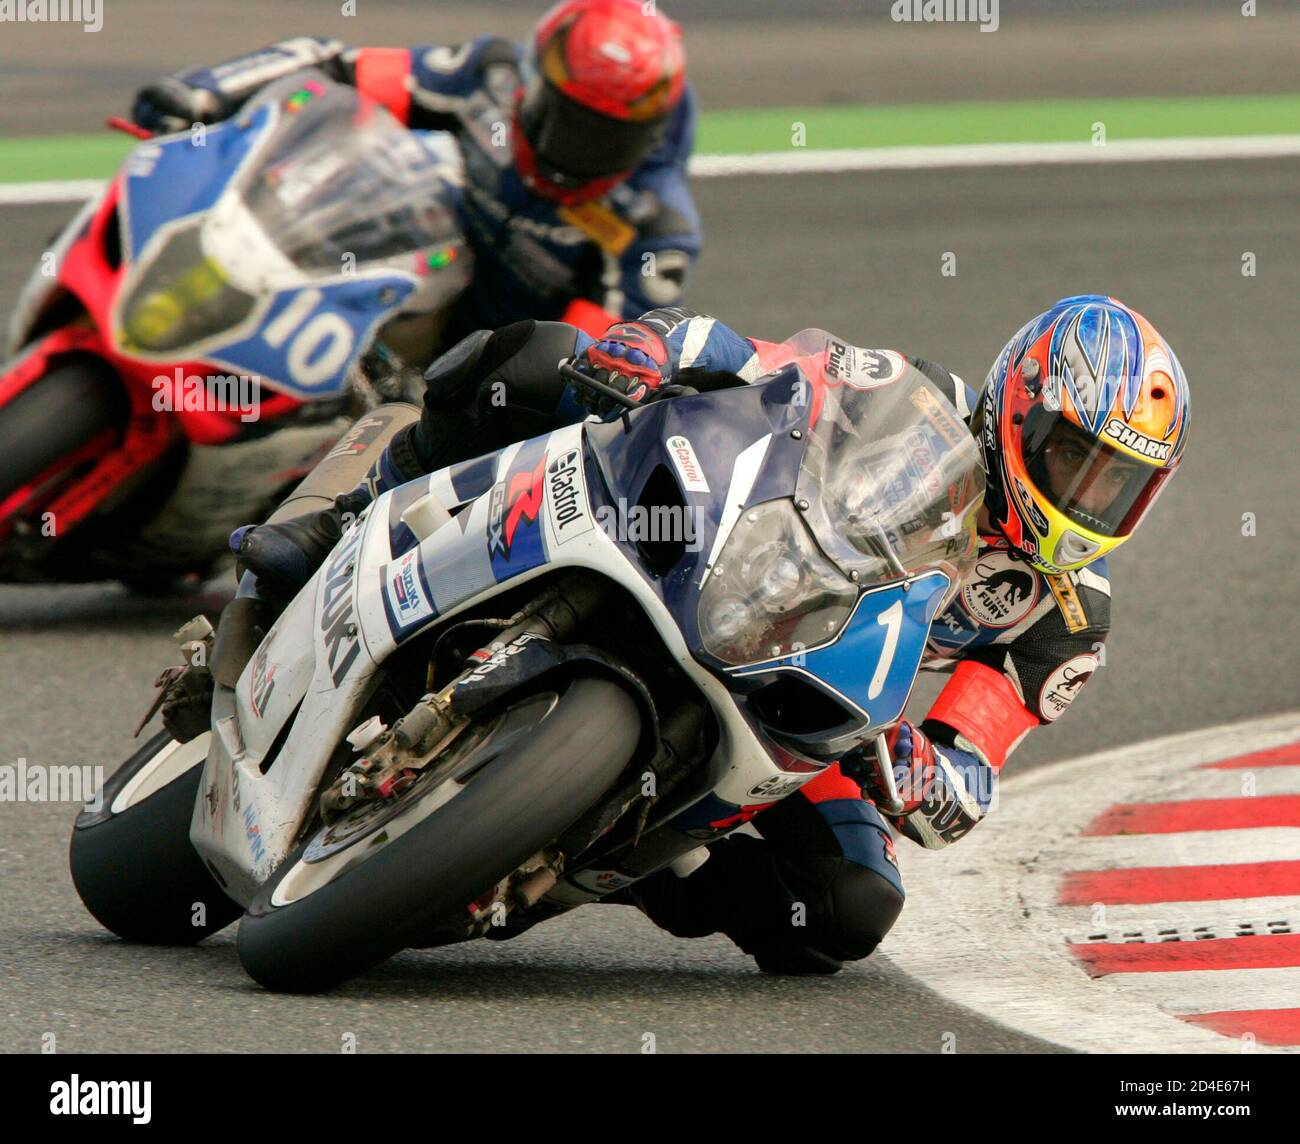 Matthieu Lagrive of France drives his Suzuki GSXR 1000 to lead the Bol d'Or endurance motorcycling race after 22 hours of competition in Magny-Cours.  Suzuki Castrol Team rider Matthieu Lagrive (R) of France drives his Suzuki GSXR 1000 to lead the Bol d'Or endurance motorcycling race after 22 hours of competition in Magny-Cours, France September 12, 2004. Behind (L) is the Infini Team Moto Suzuki GSXR 1000 in seventh place. REUTERS/Robert Pratta Stock Photo